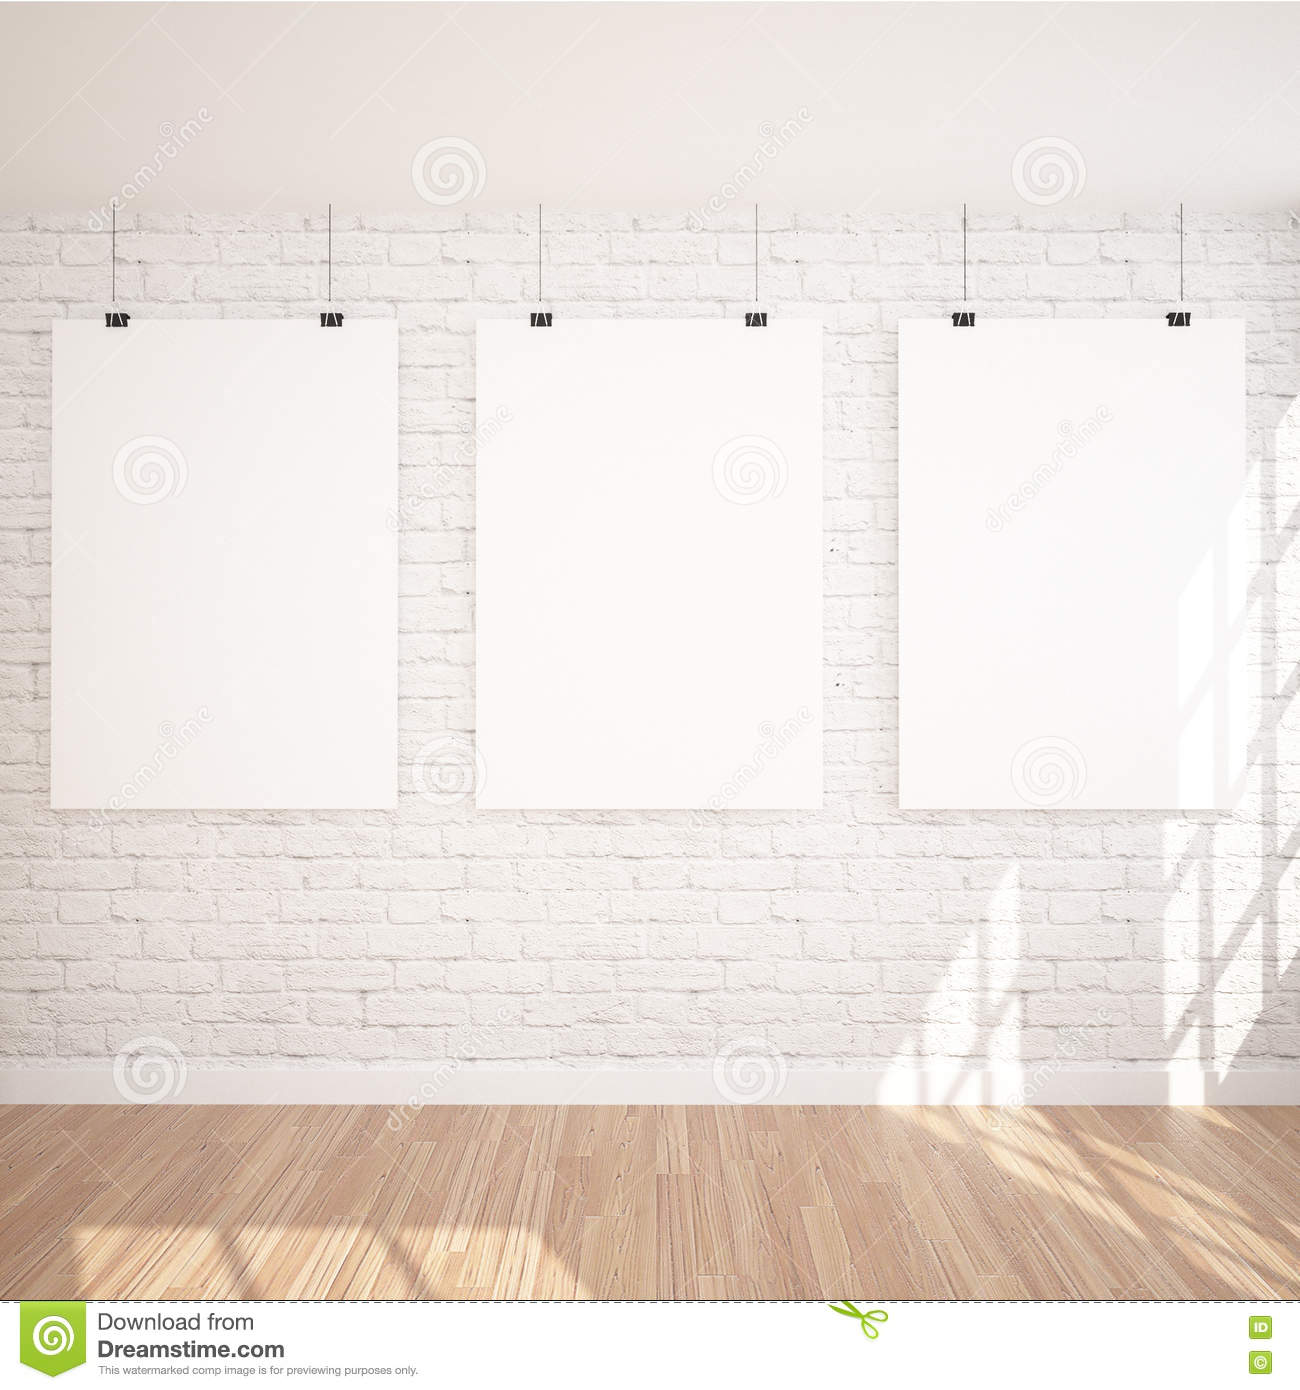 3 Hanging Poster Mock Up In Contemporary Exhibition Interior Space